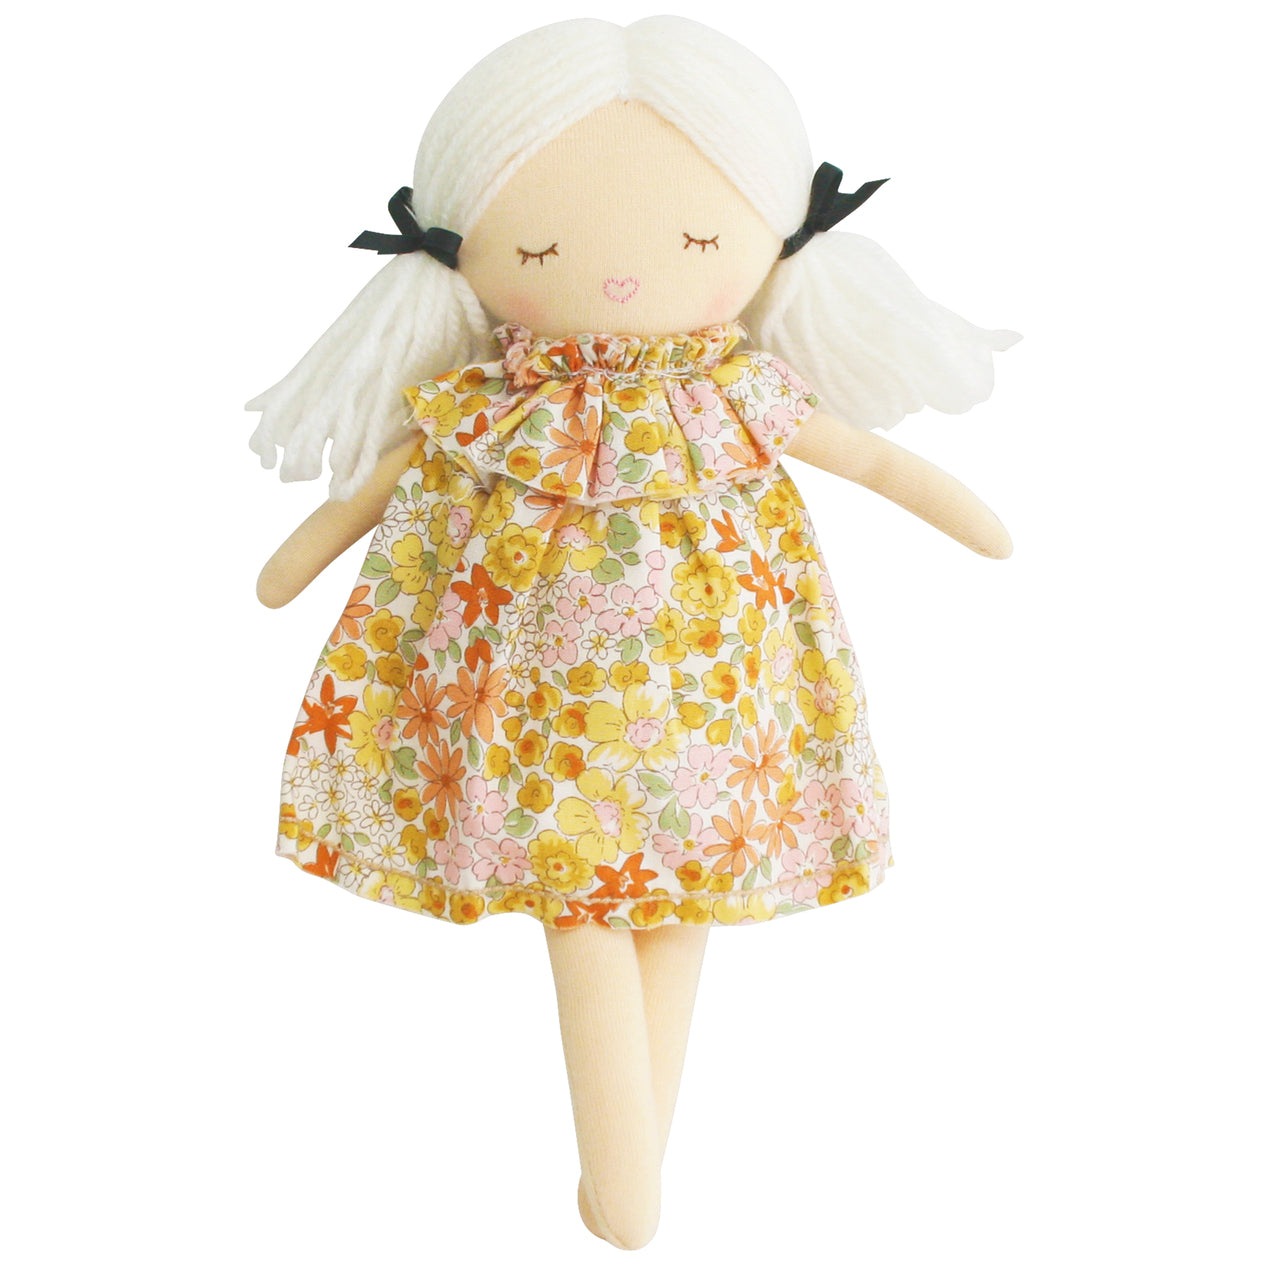 ALIMROSE MINI MATILDA ASLEEP AWAKE SWEET MARIGOLD 24CM